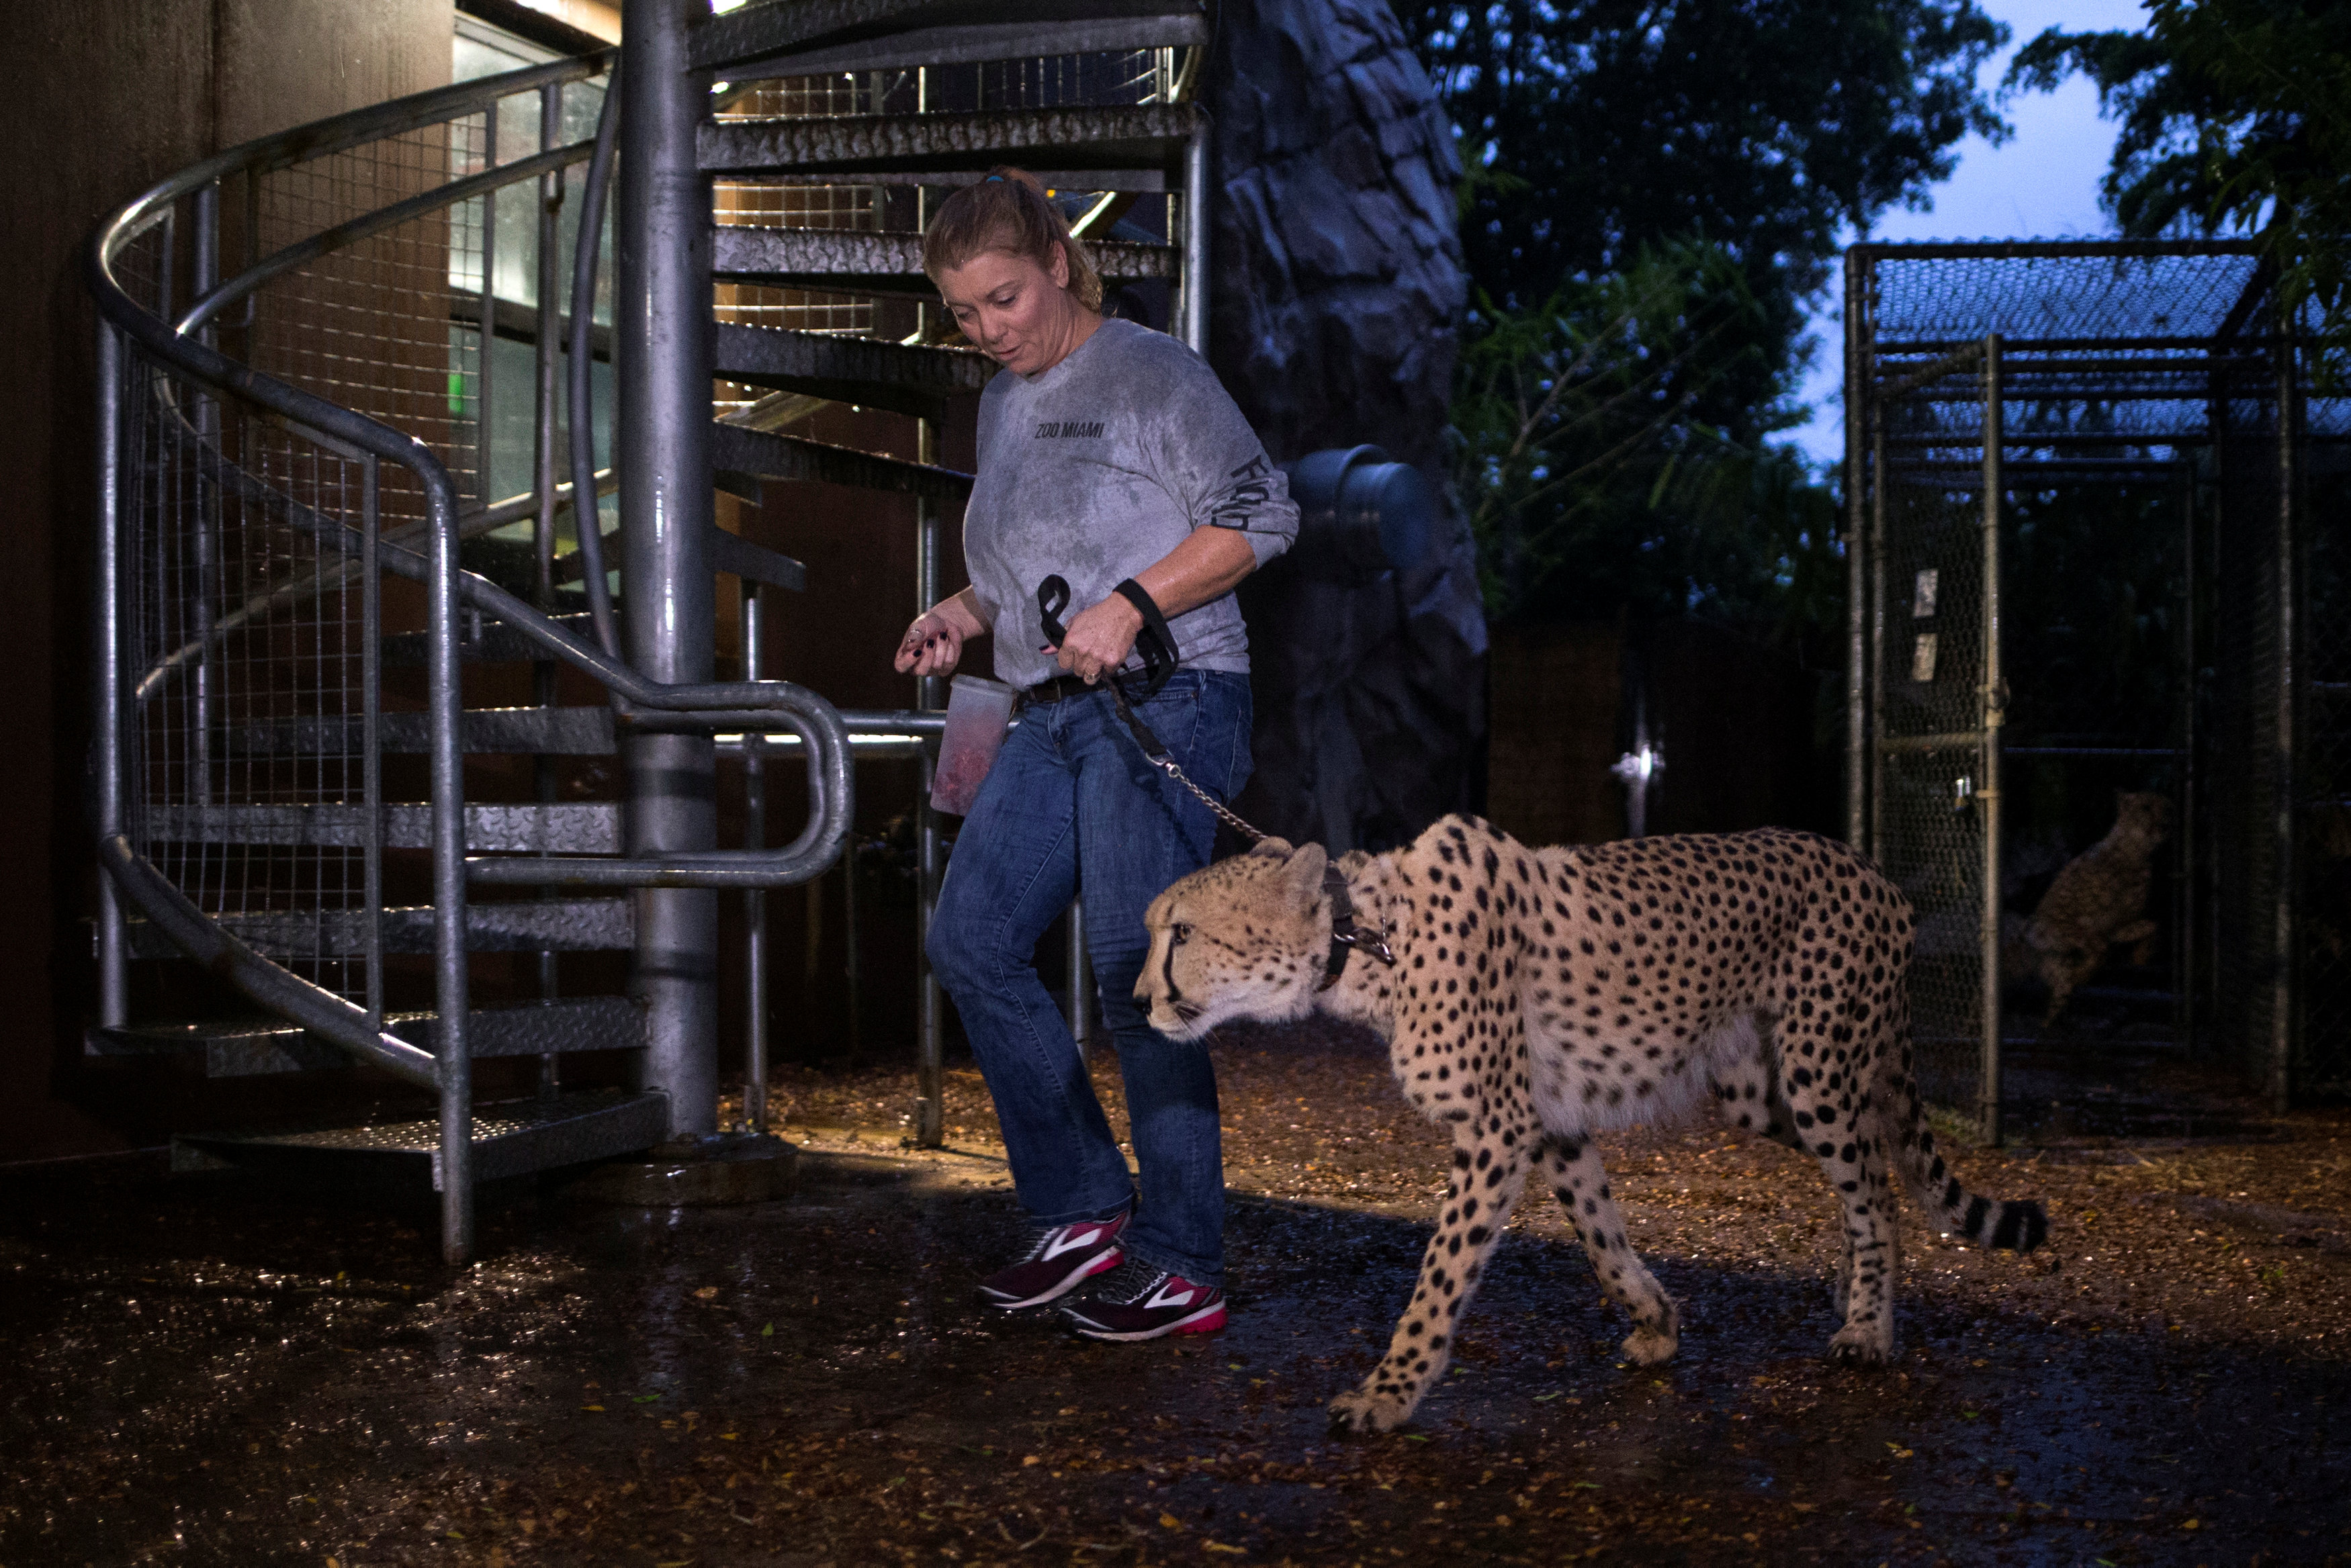 Senior keeper Jennifer Nelson walks a cheetah to a shelter ahead of the downfall of Hurricane Irma at the Miami Zoo in Miami, Florida, U.S. September 9, 2017.  REUTERS/Adrees Latif